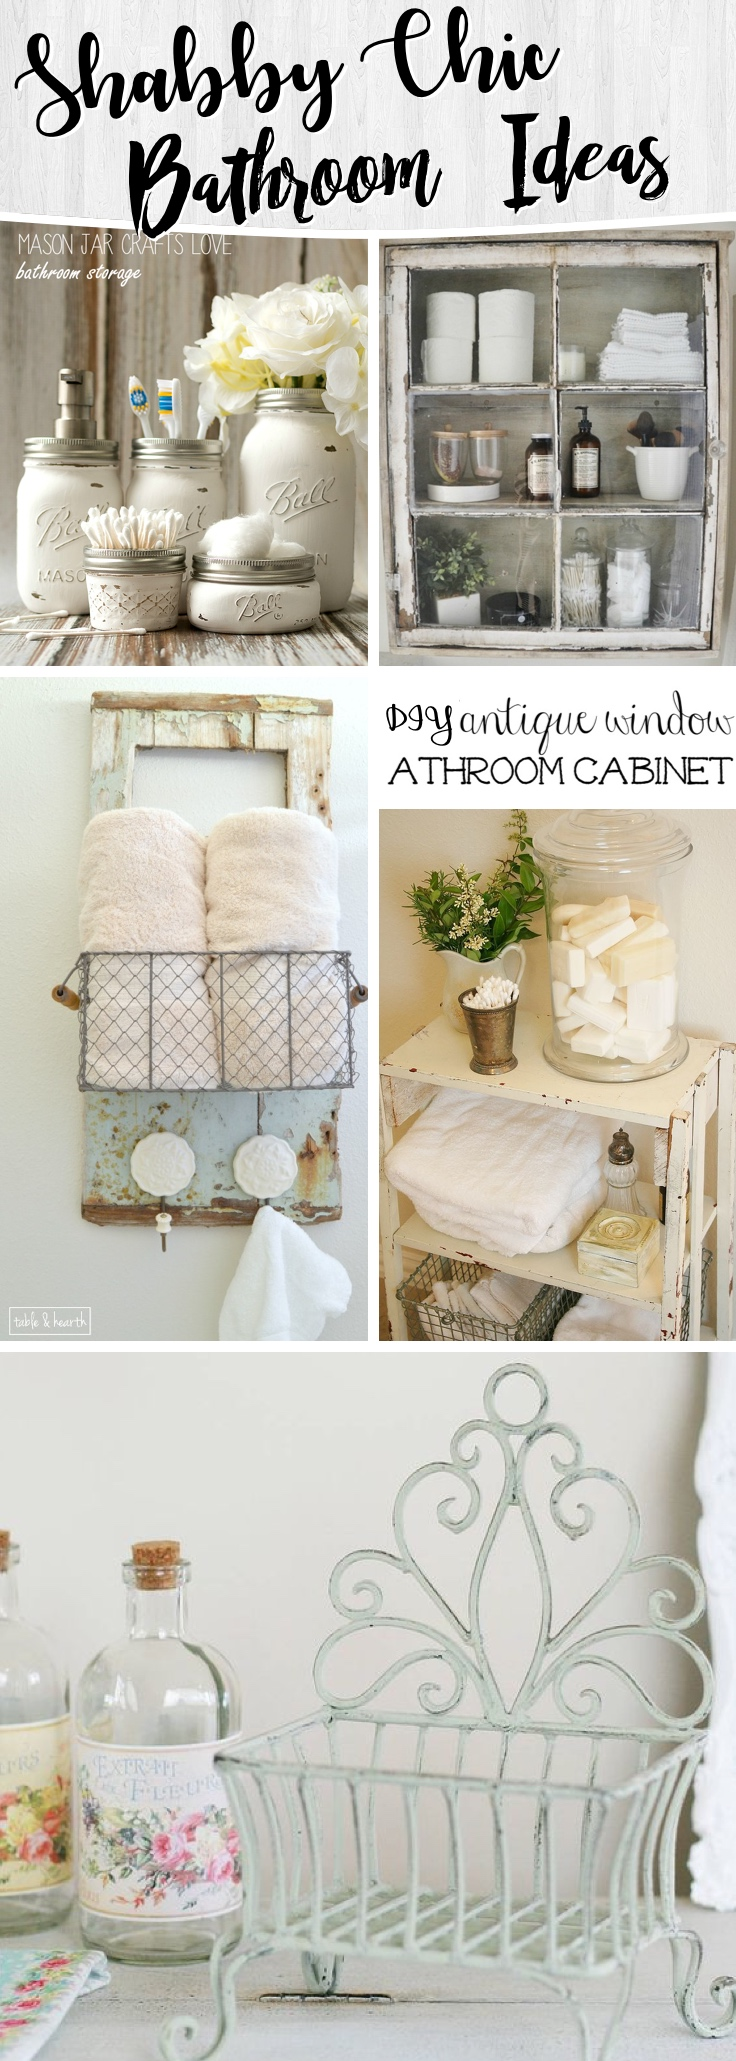 15 Shabby Chic Bathroom Ideas